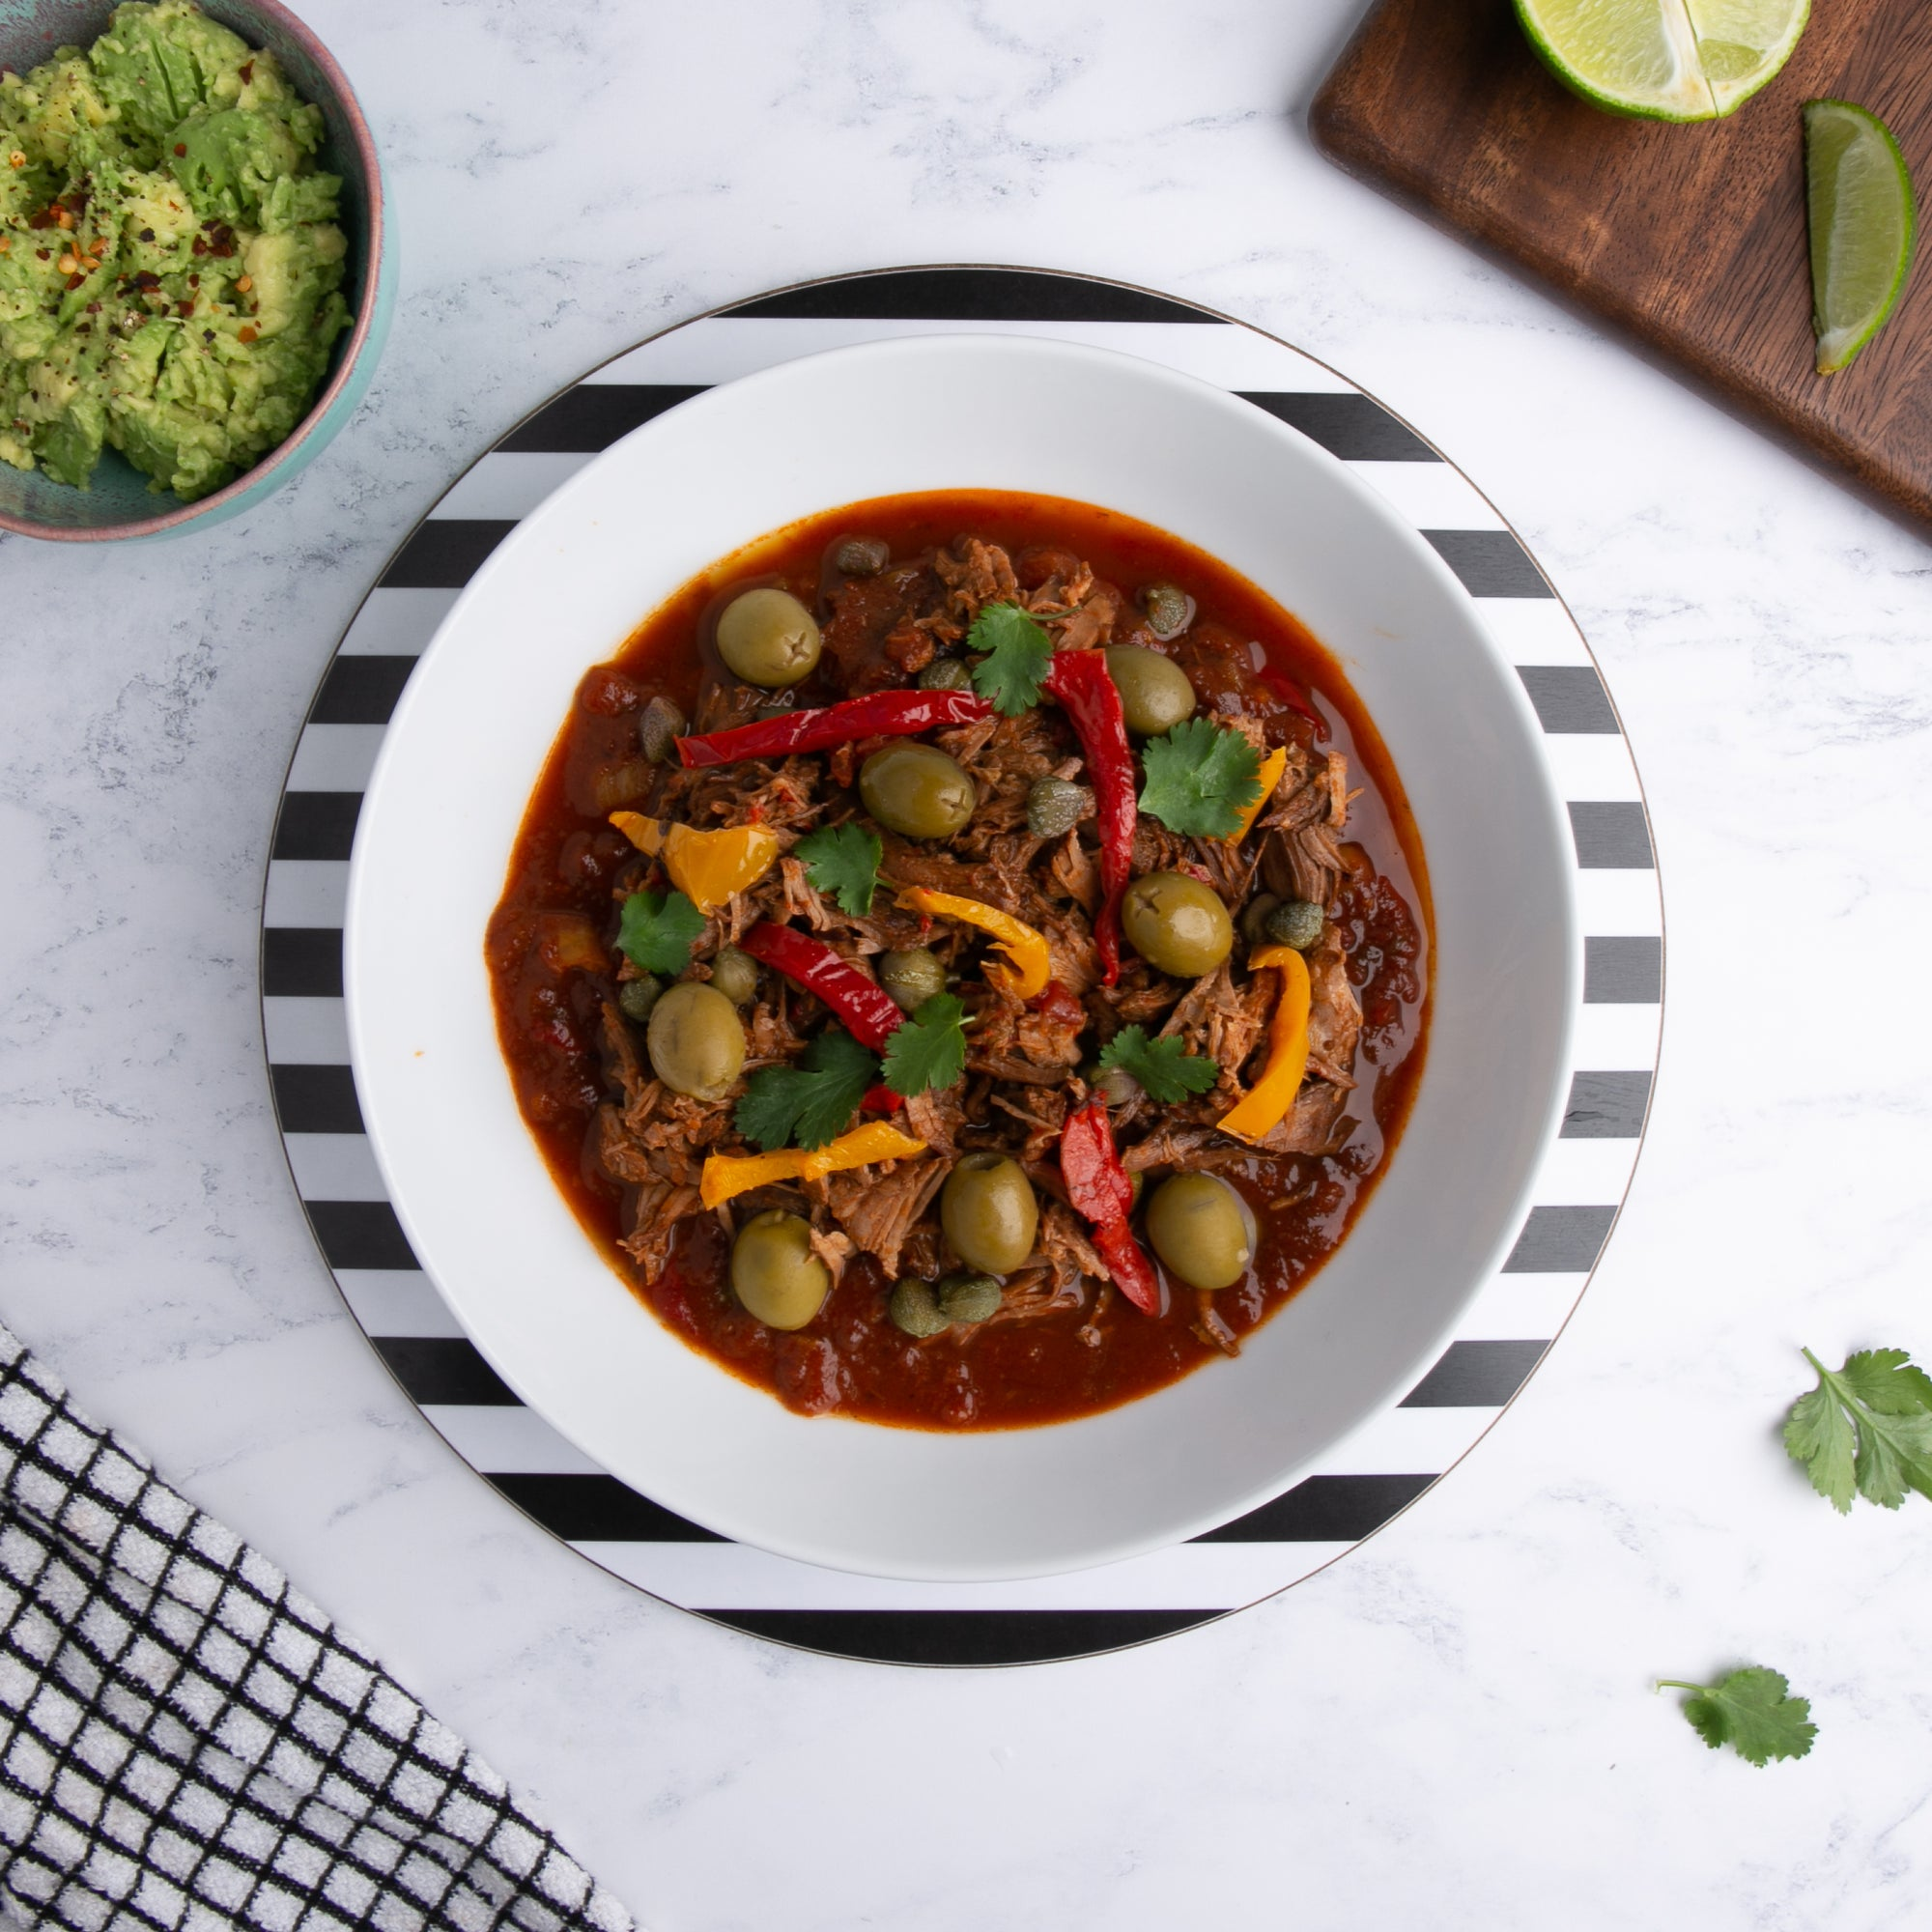 Gluten and Dairy Free Ropa Vieja Beef Stew - vegan option